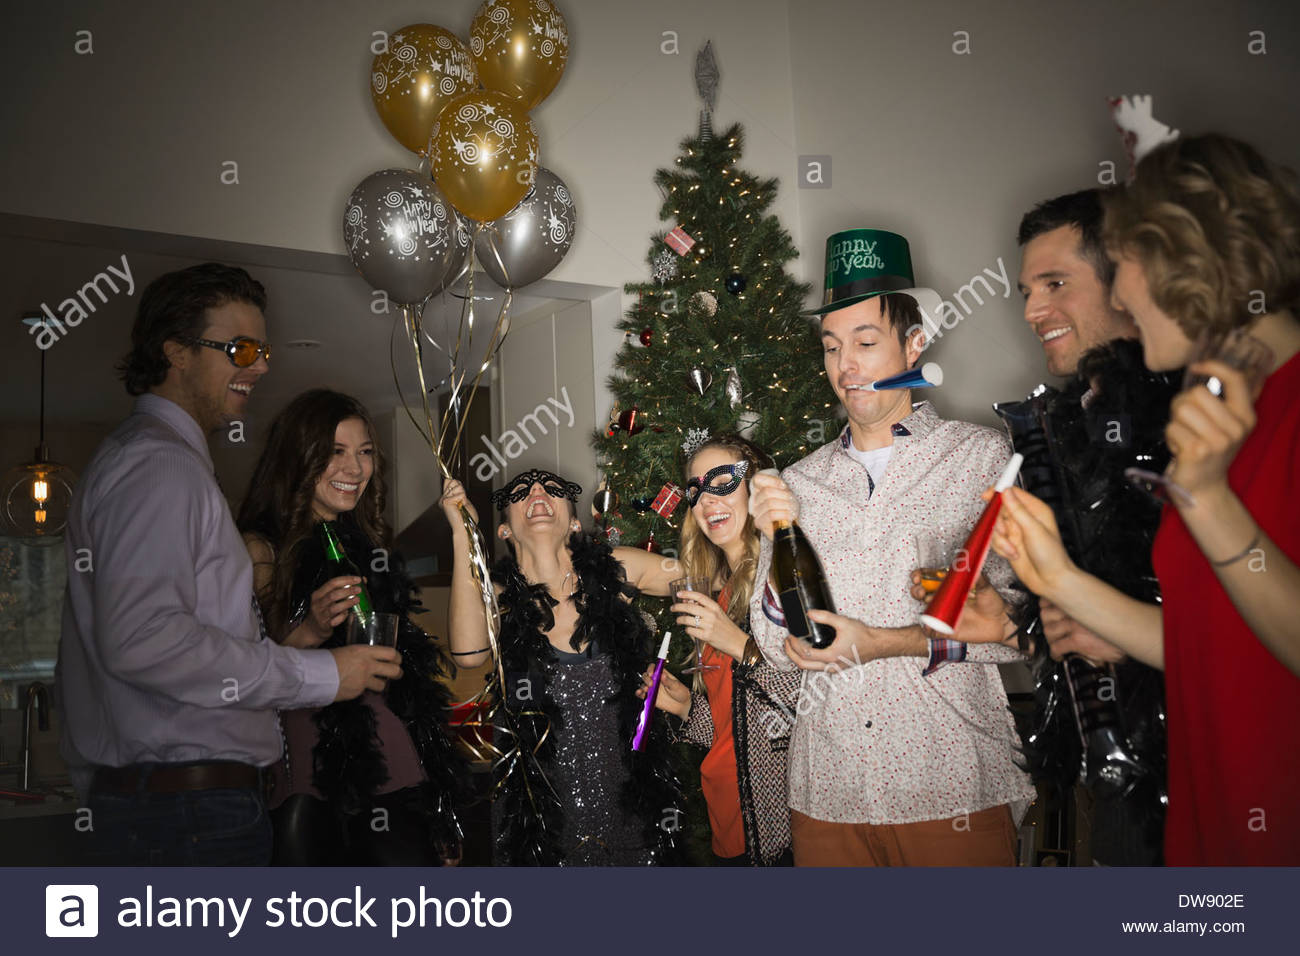 Friends celebrating New Years Eve party at home Stock Photo ...